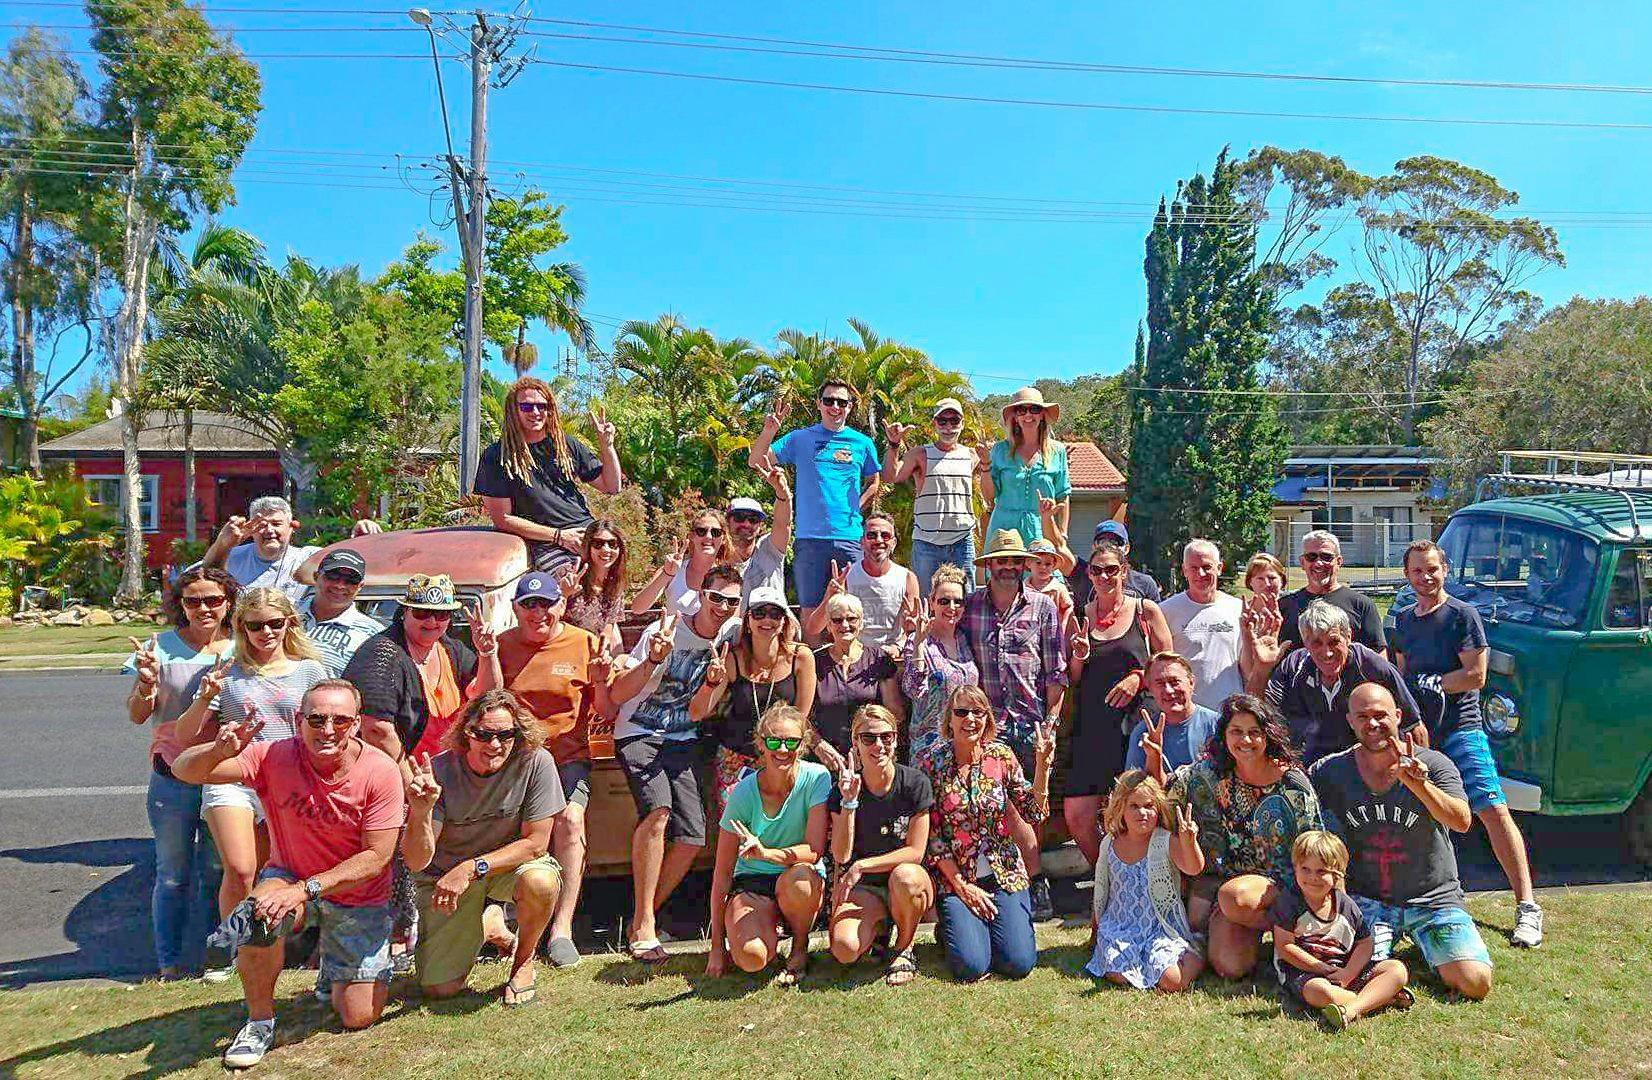 PEACE: Participants in the Surfing the Coldstream Kombi display.